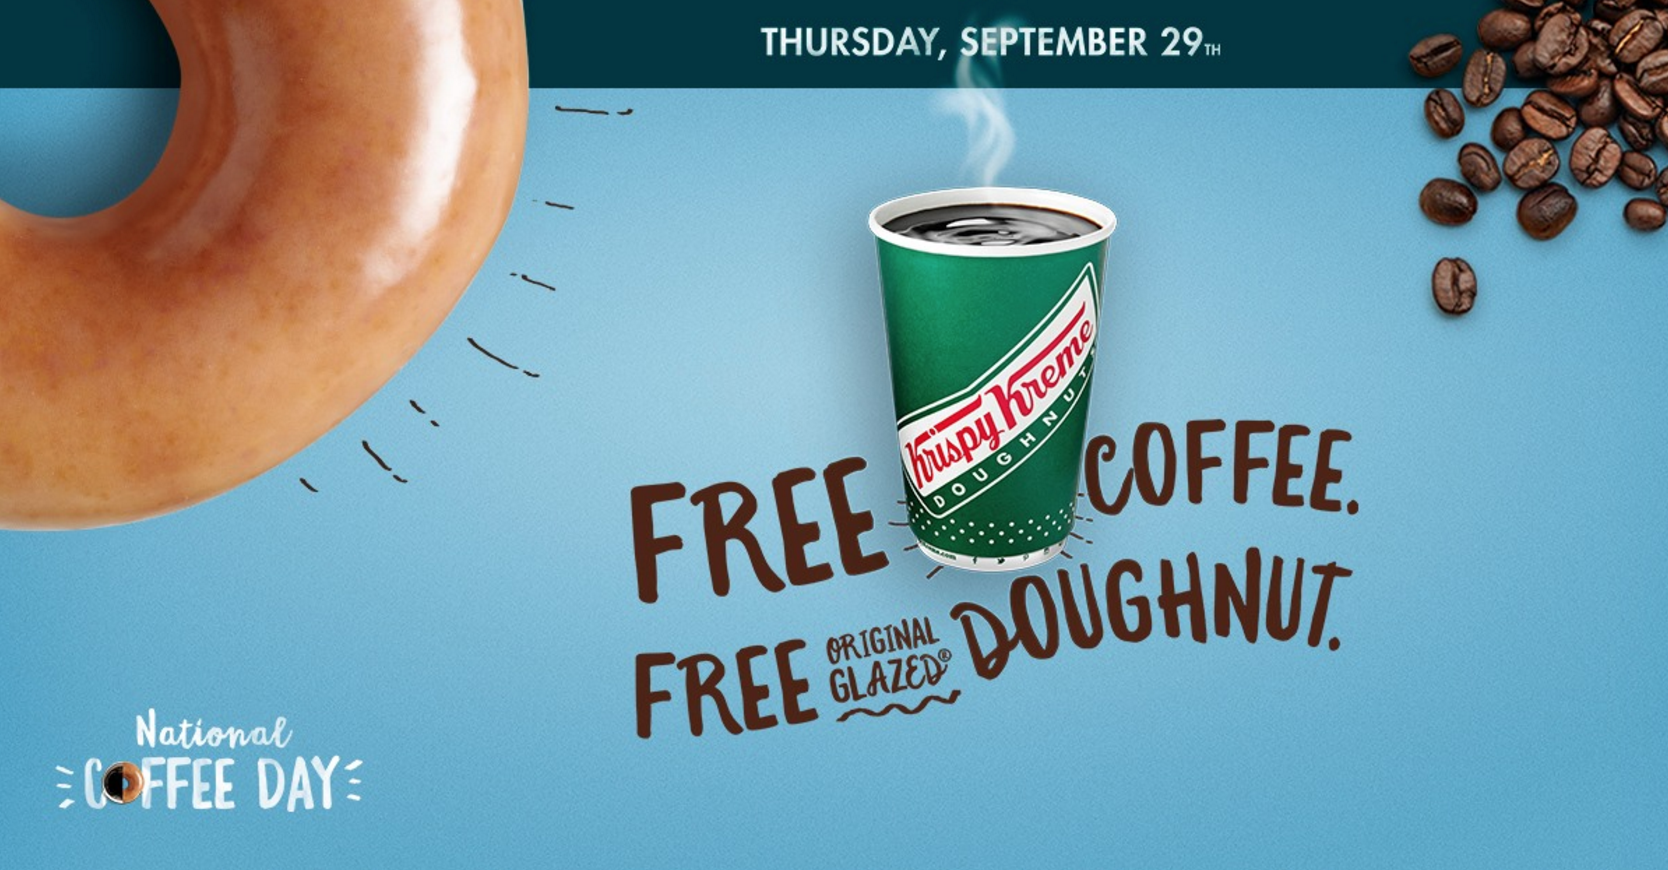 National Coffee Day Freebies